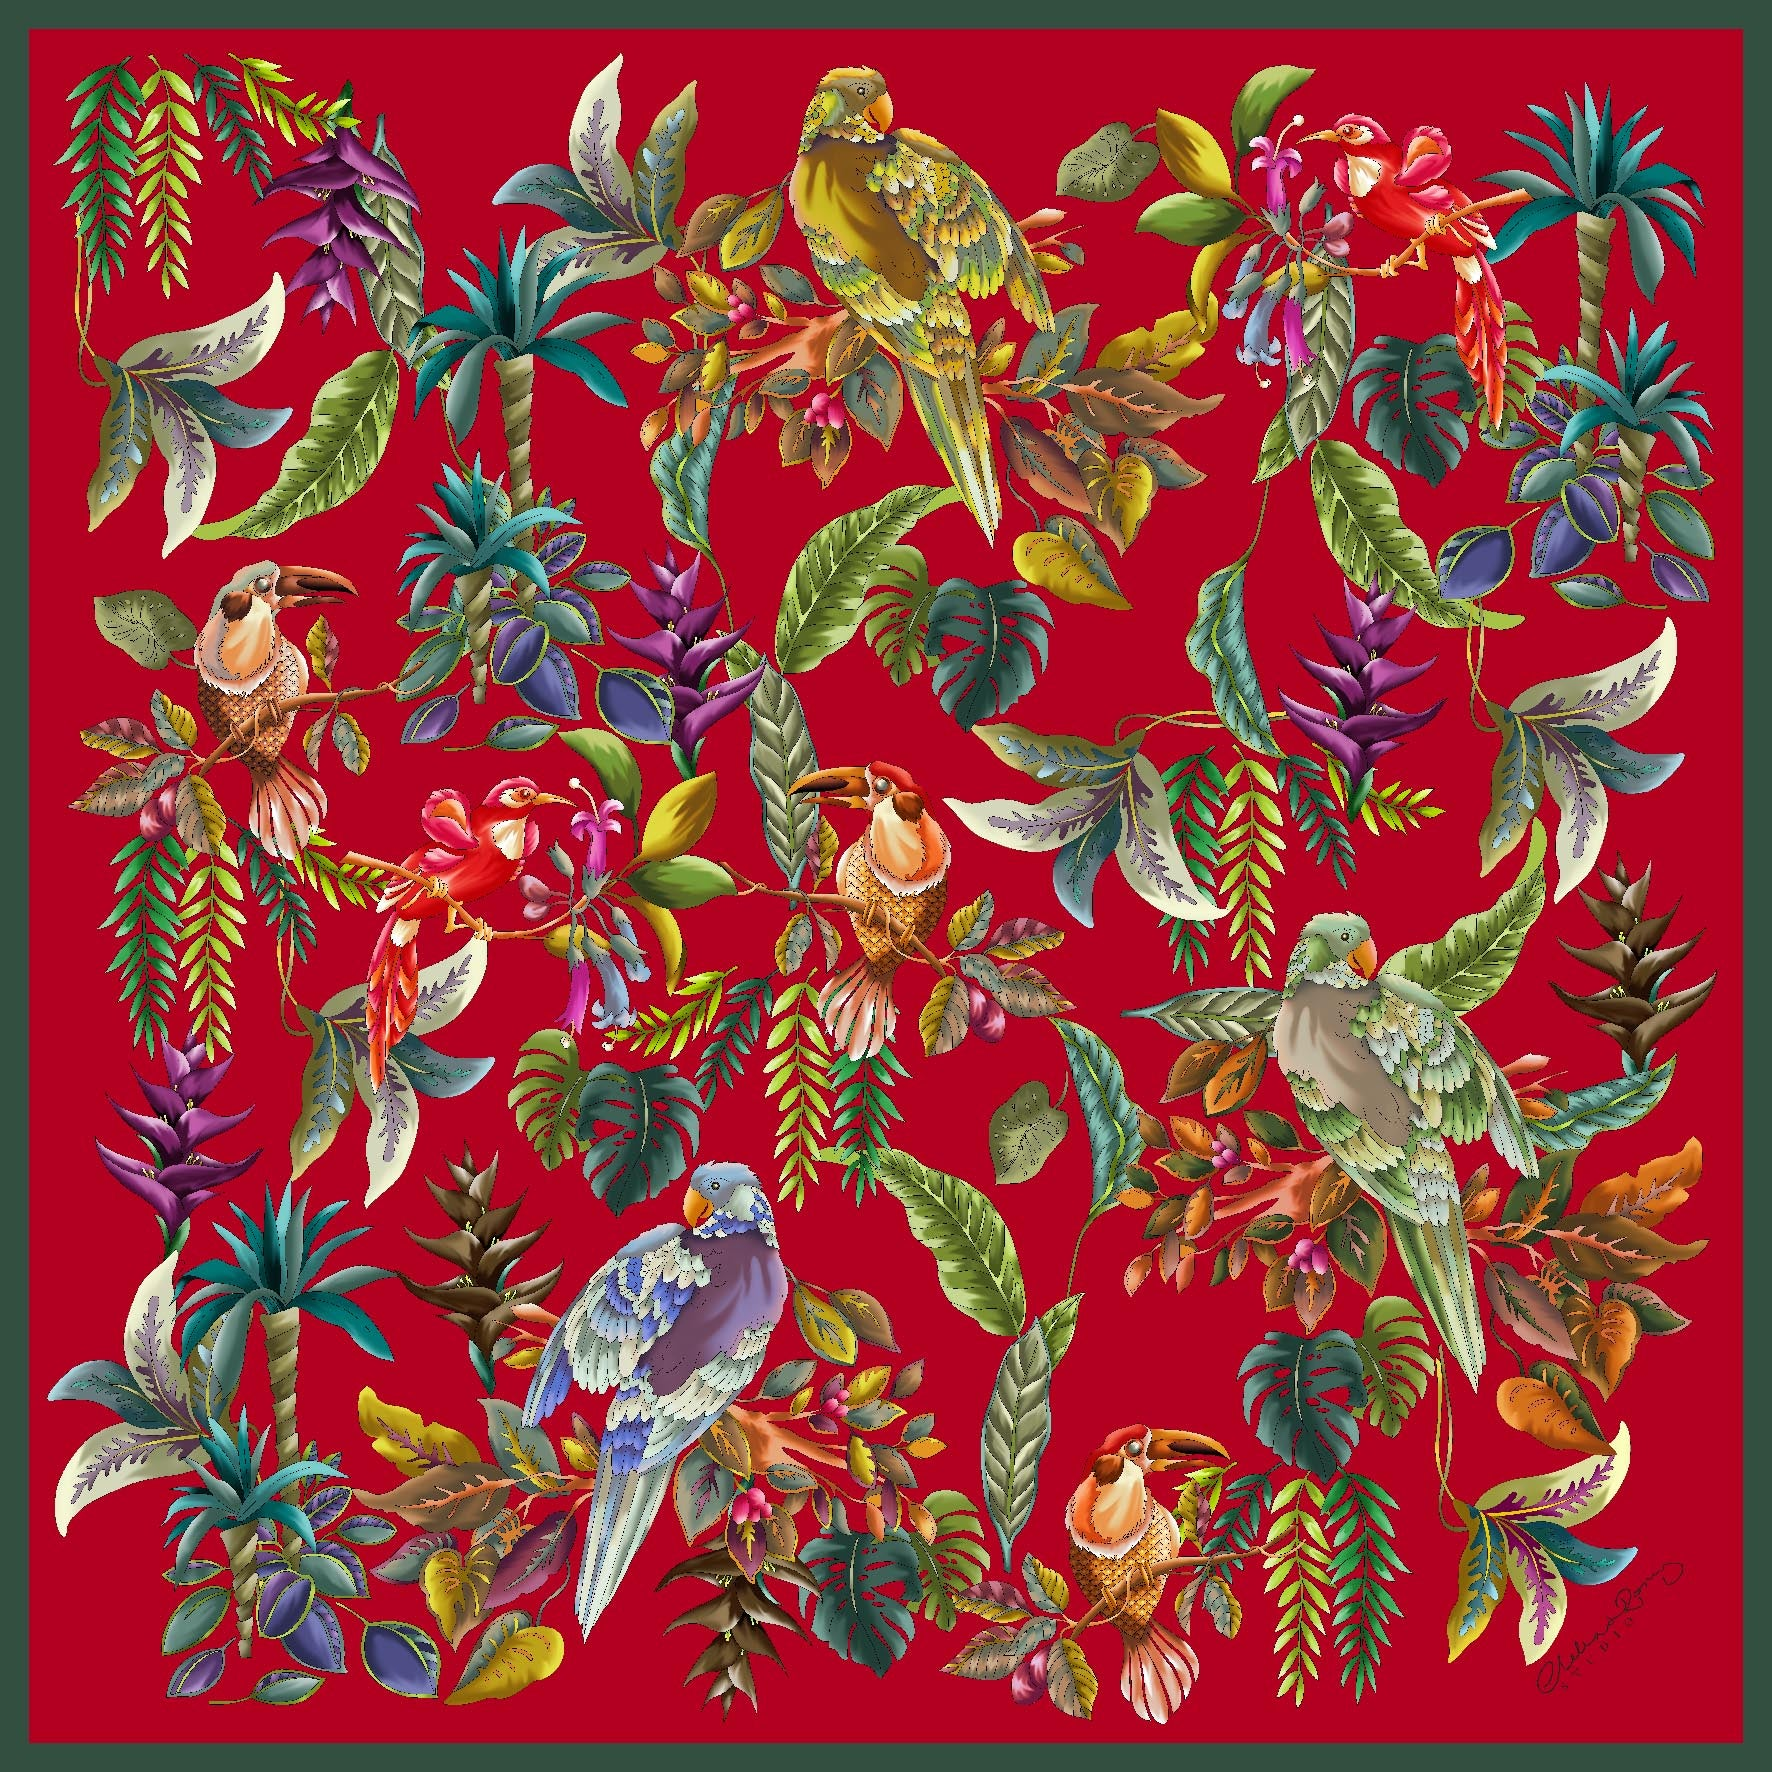 Parrots on Red